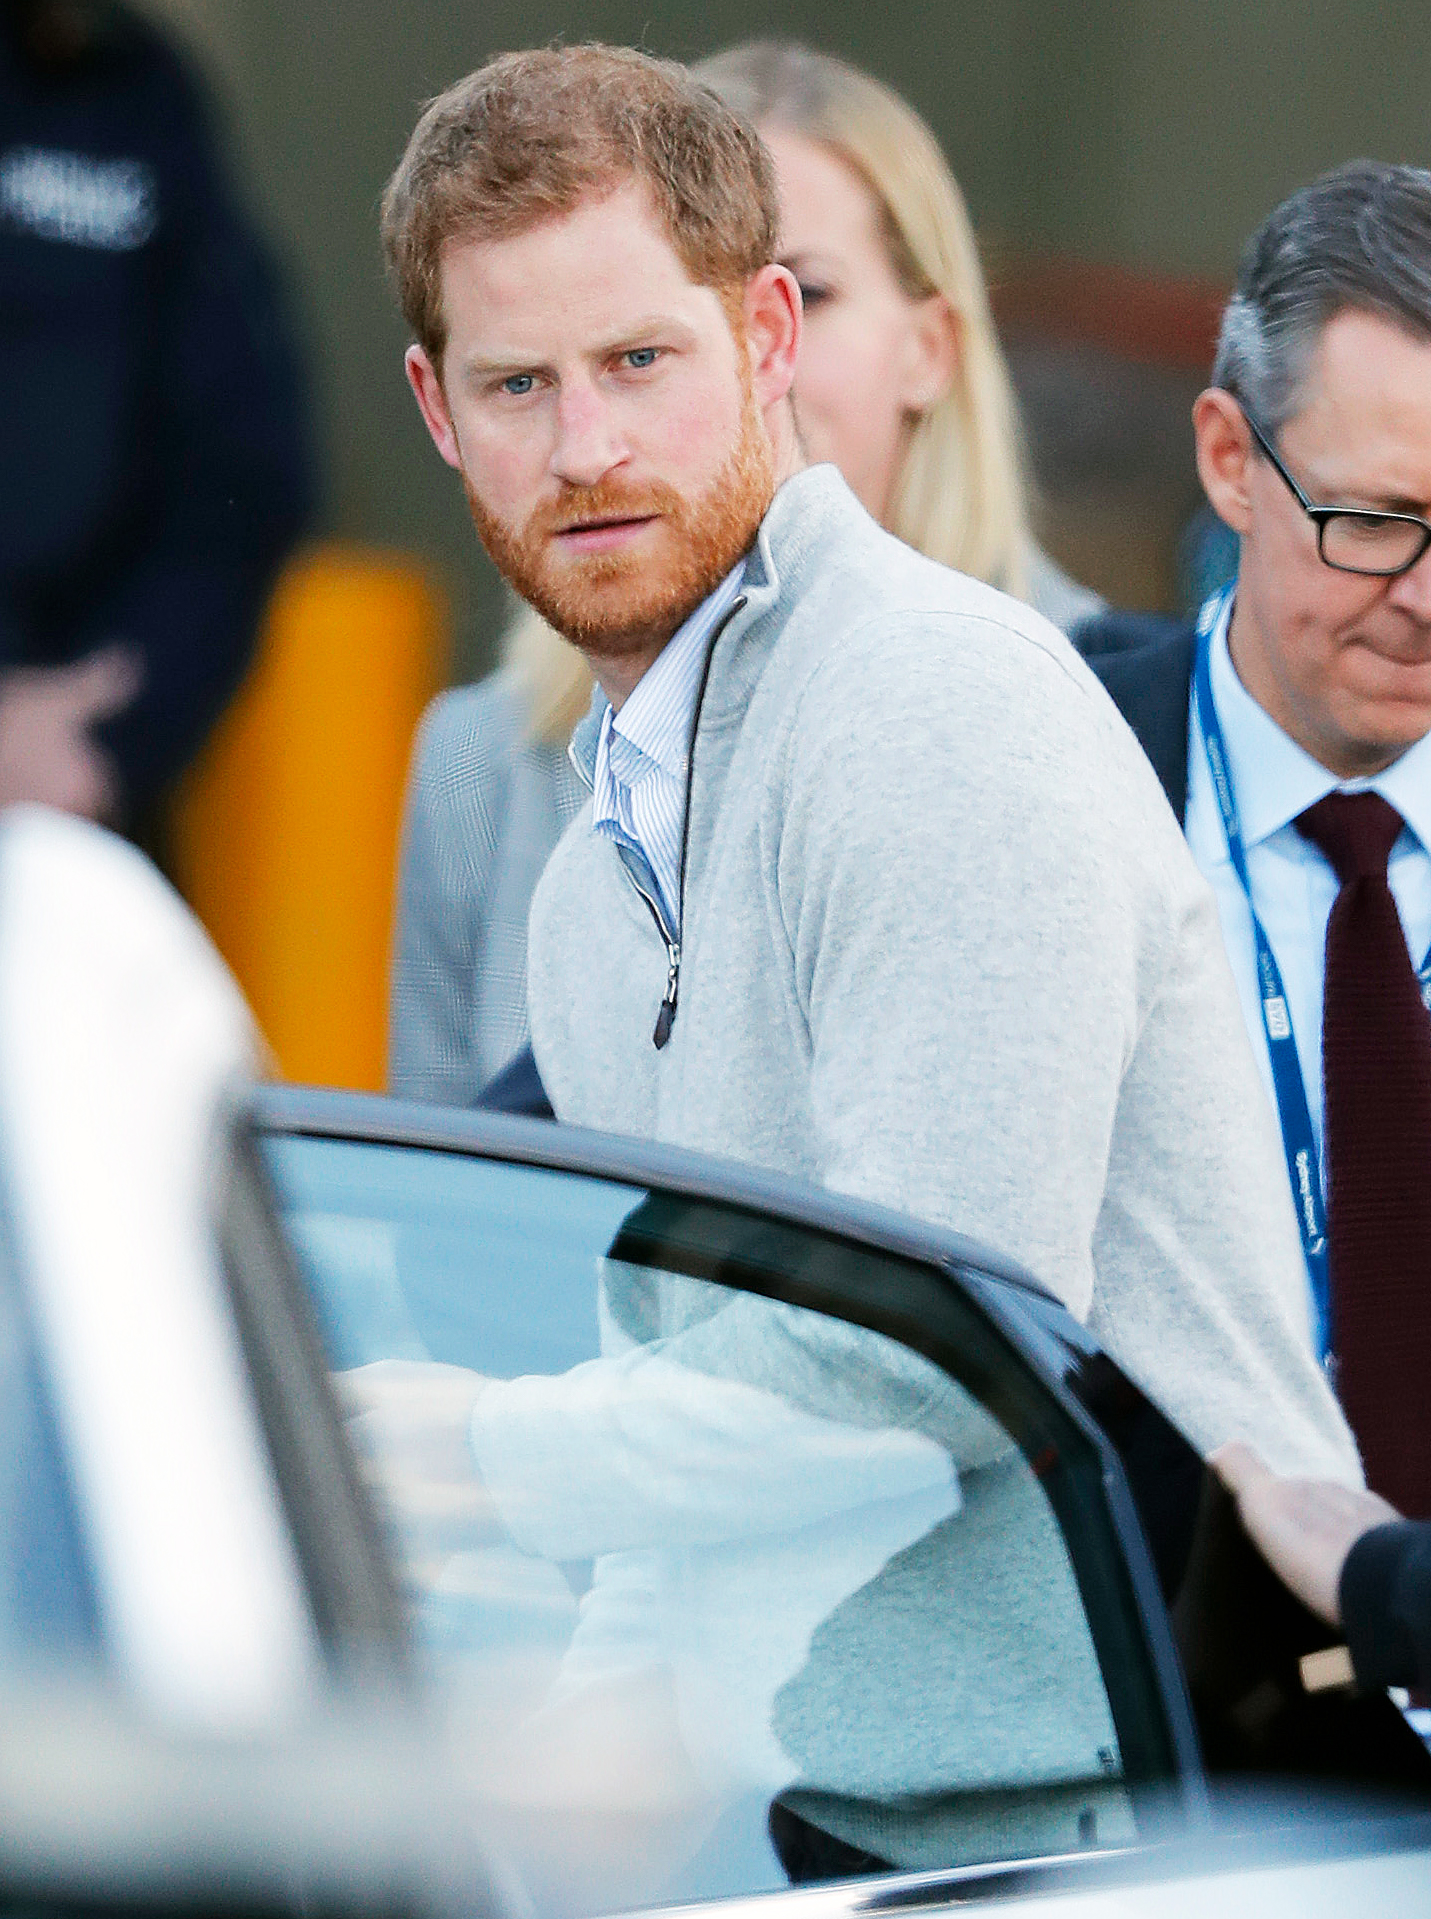 Prince Harry Duchess Meghan Sydney Arrival - Harry is set to open the Invictus Games, a competition for wounded veterans that he launched four years ago.